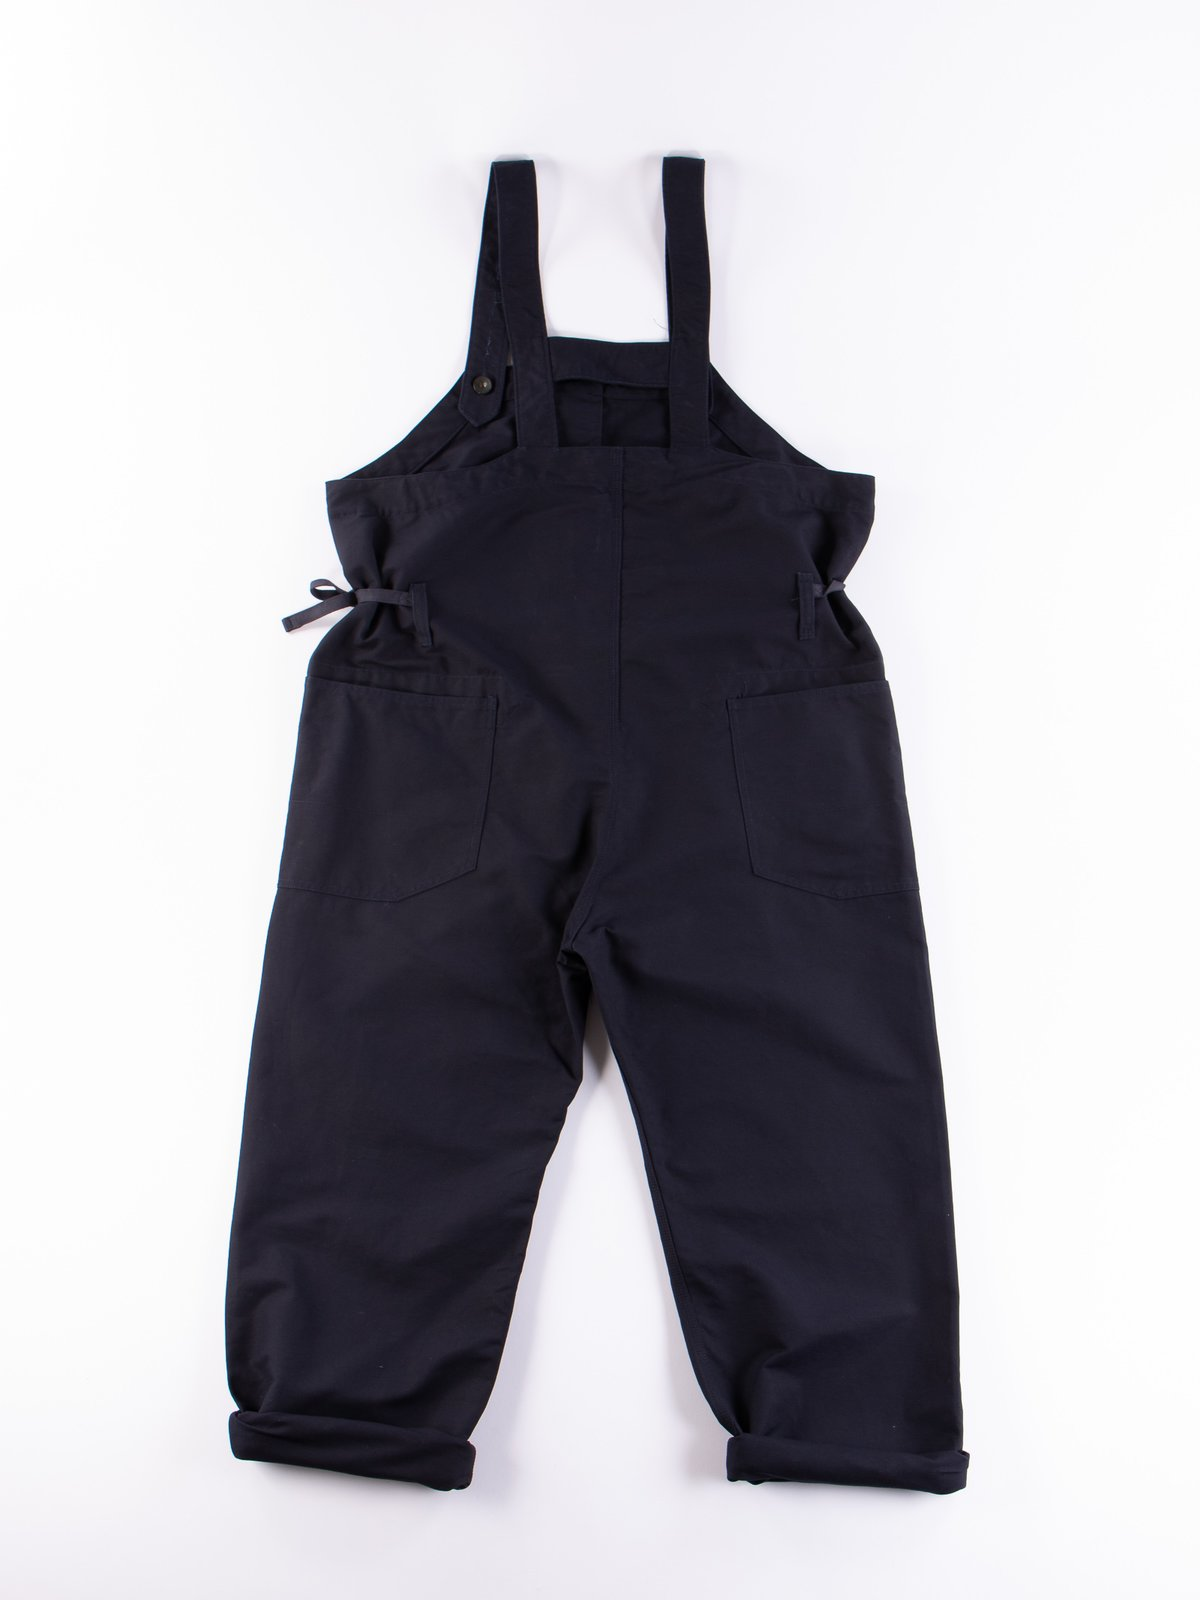 Navy Cotton Double Cloth Waders - Image 6